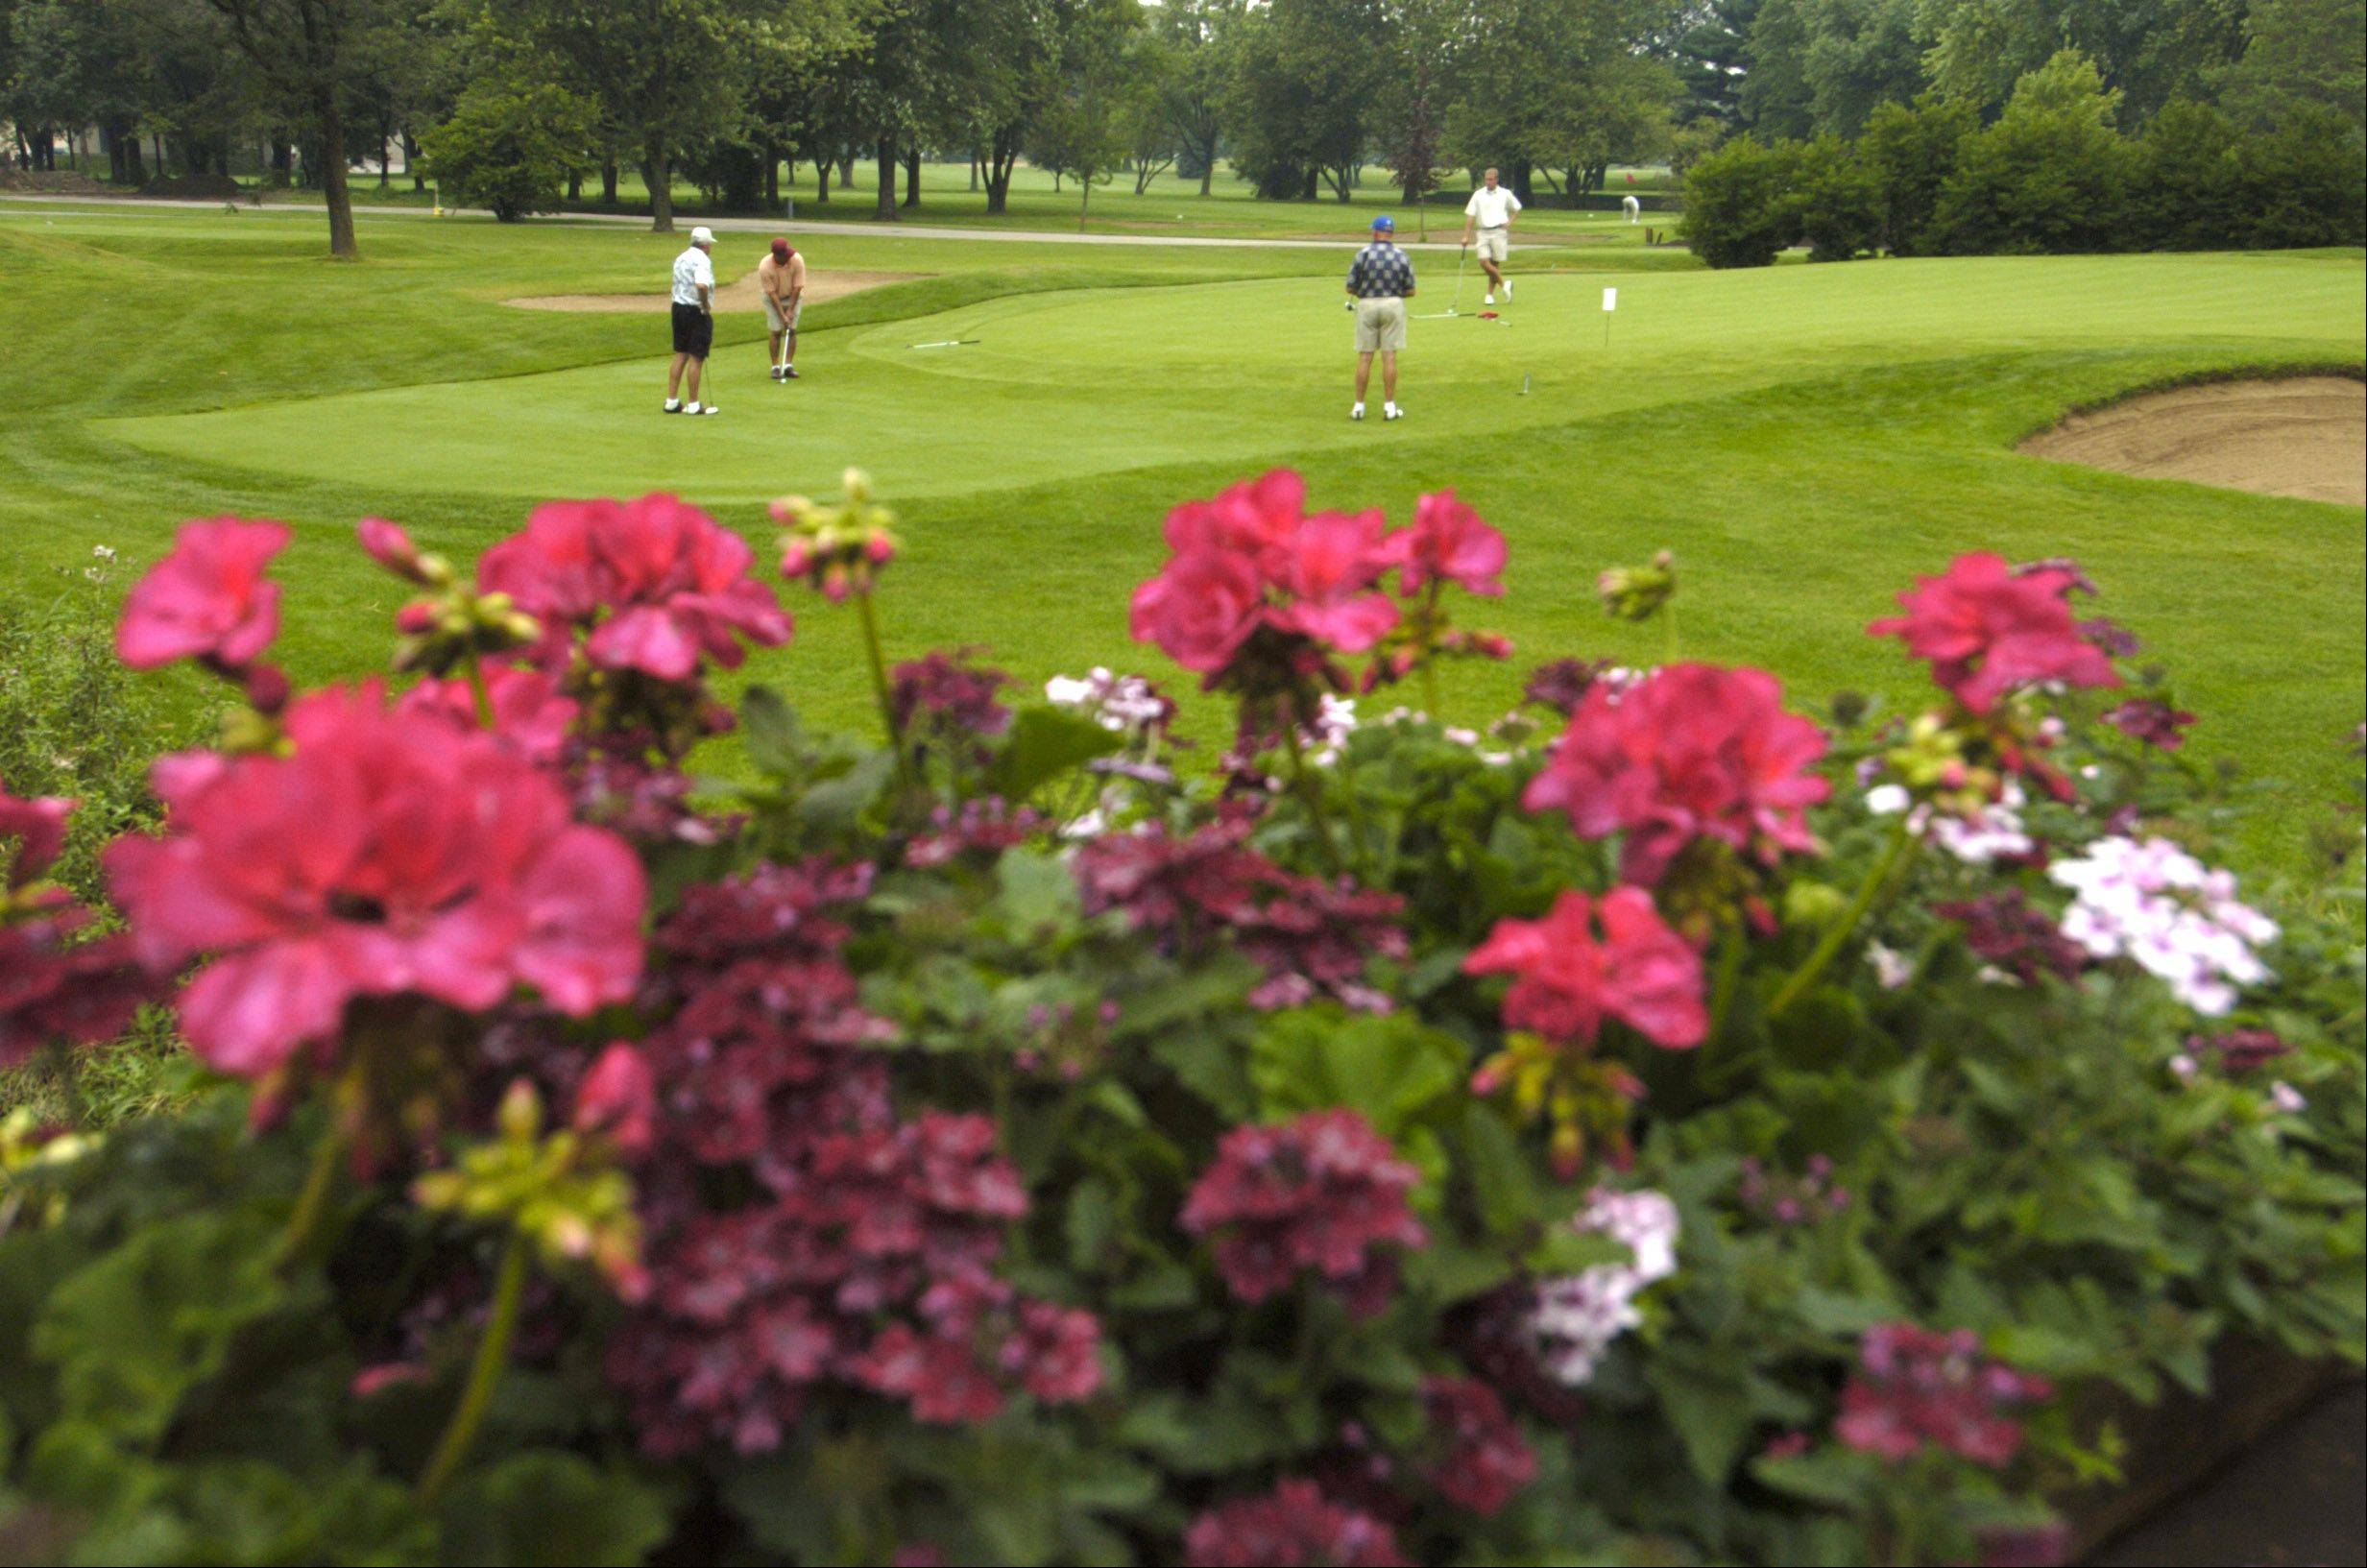 Mount Prospect Golf Club 75-foot driving range net rejected